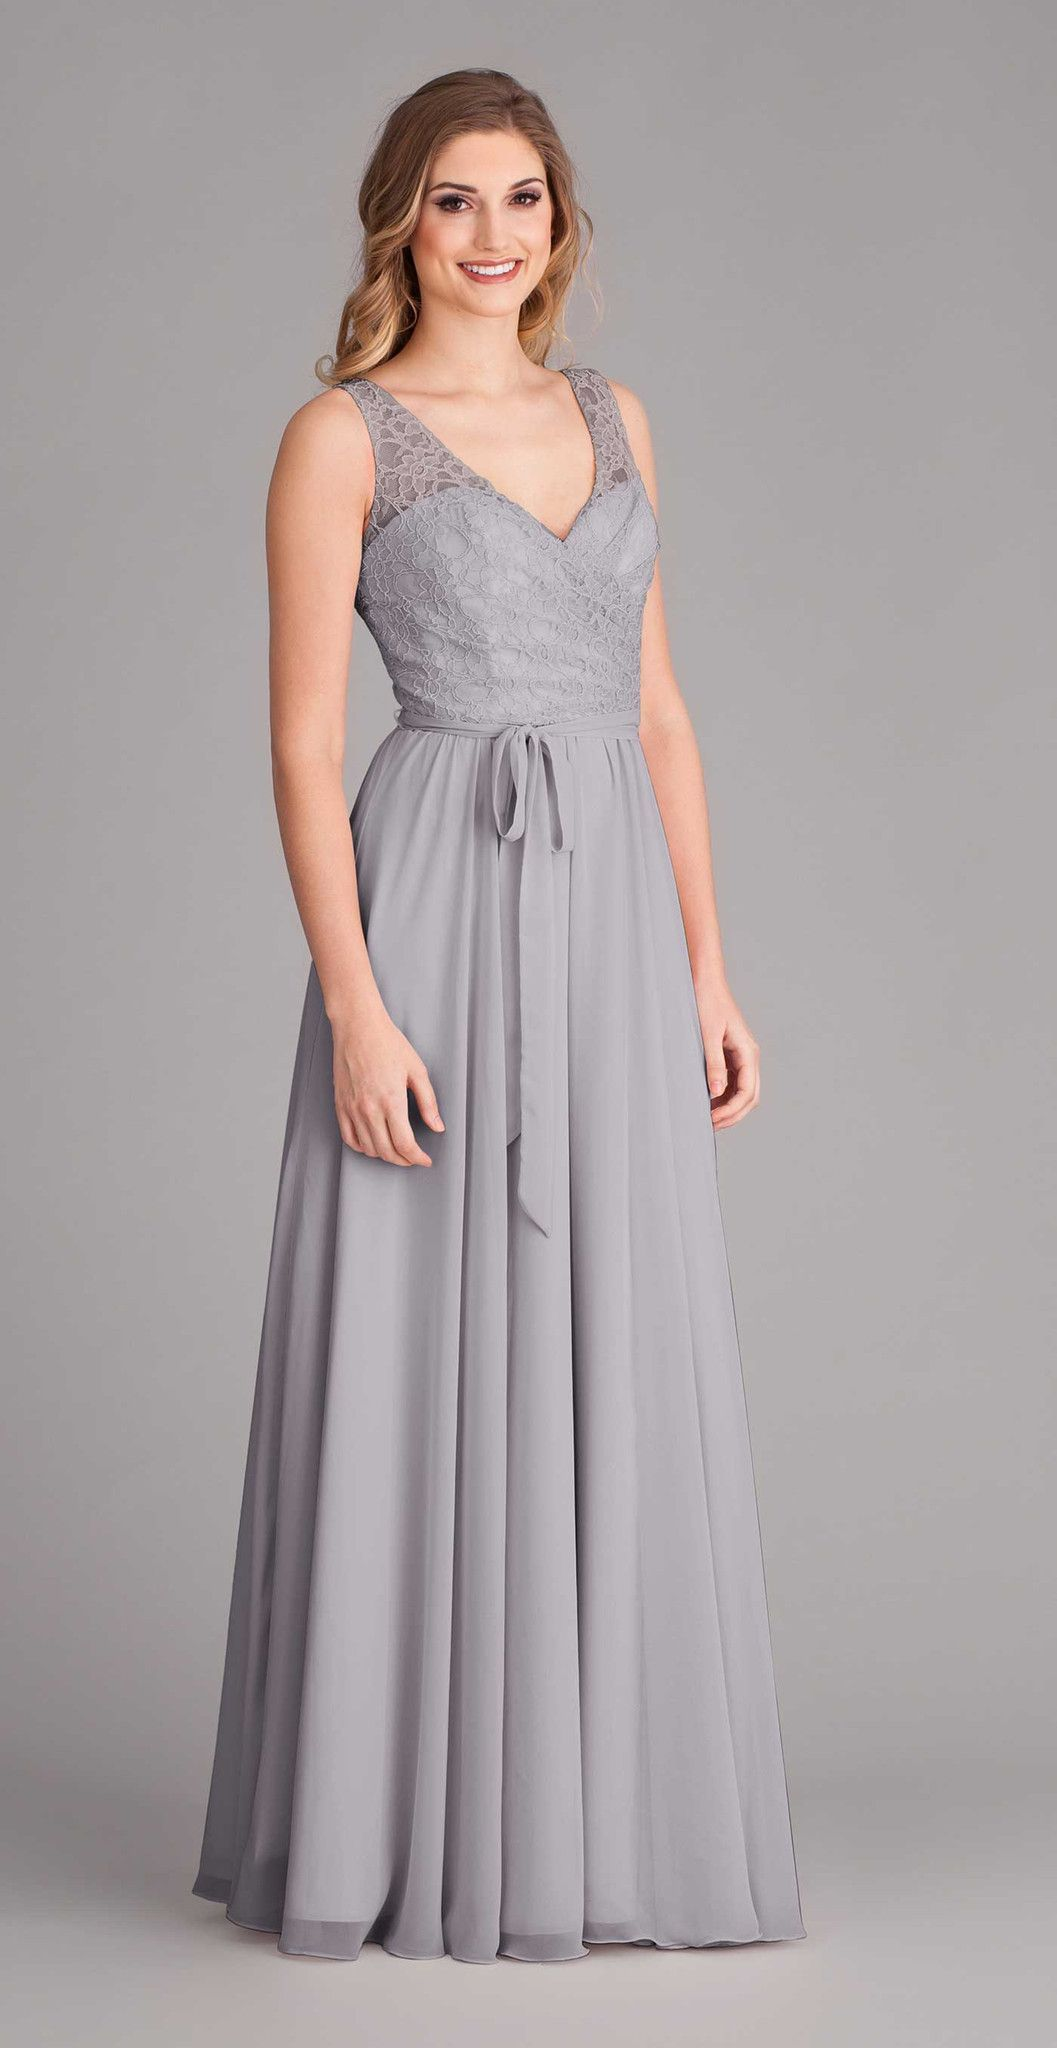 Brooke pinterest lace top bridesmaid dresses chiffon fabric and